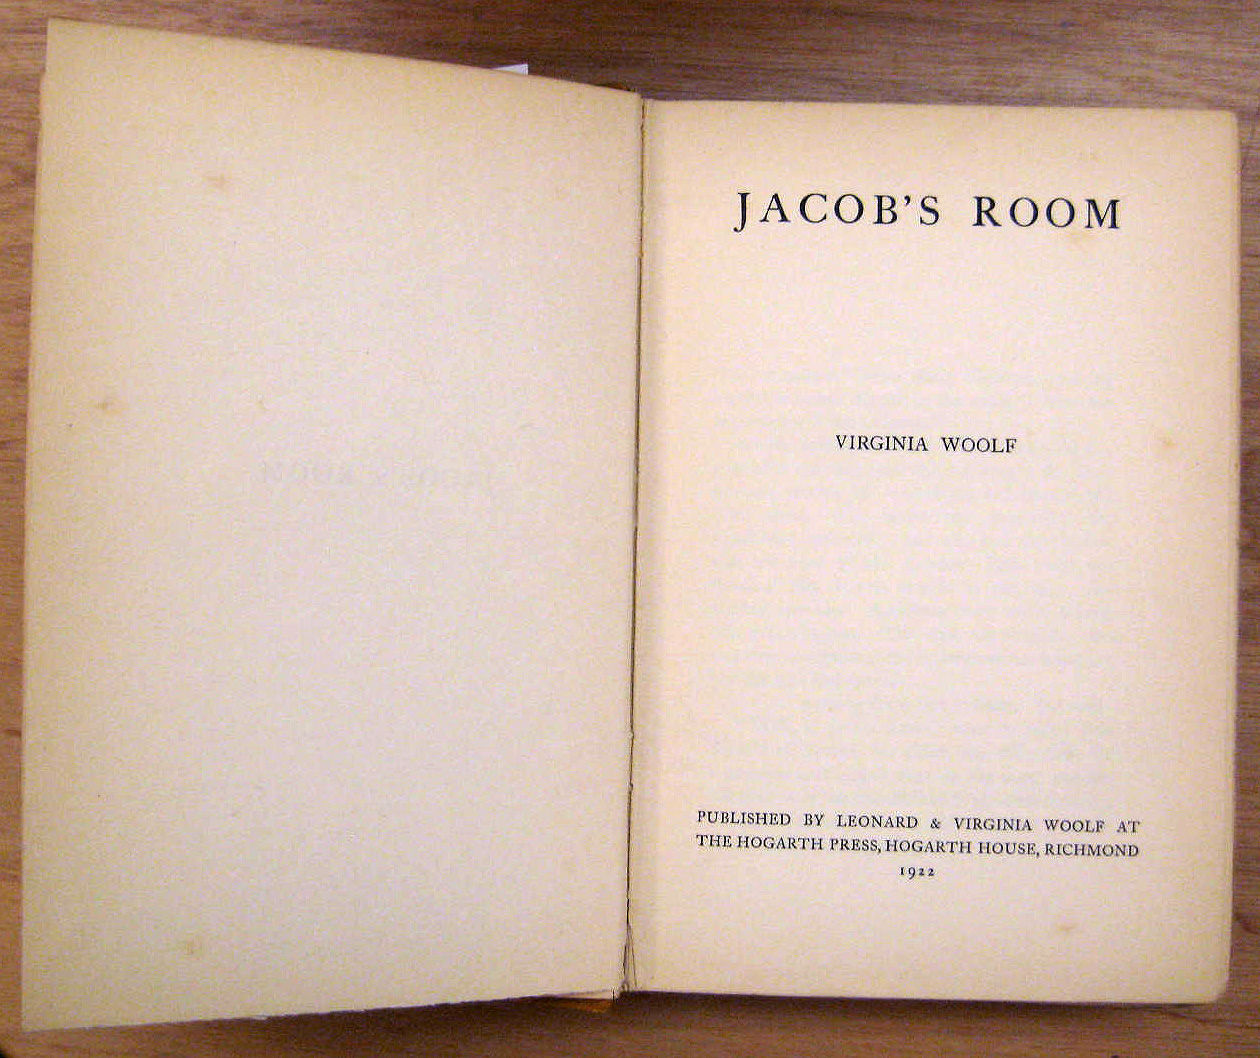 an analysis of the novel jacobs room by virginia woolf These papers were written primarily by students and provide critical analysis of jacob's room by virginia woolf unsettling, homogenous fiction: the uncertain boundary between life and art but what of the chickens: jacob's room and the masculine martyr narrative.